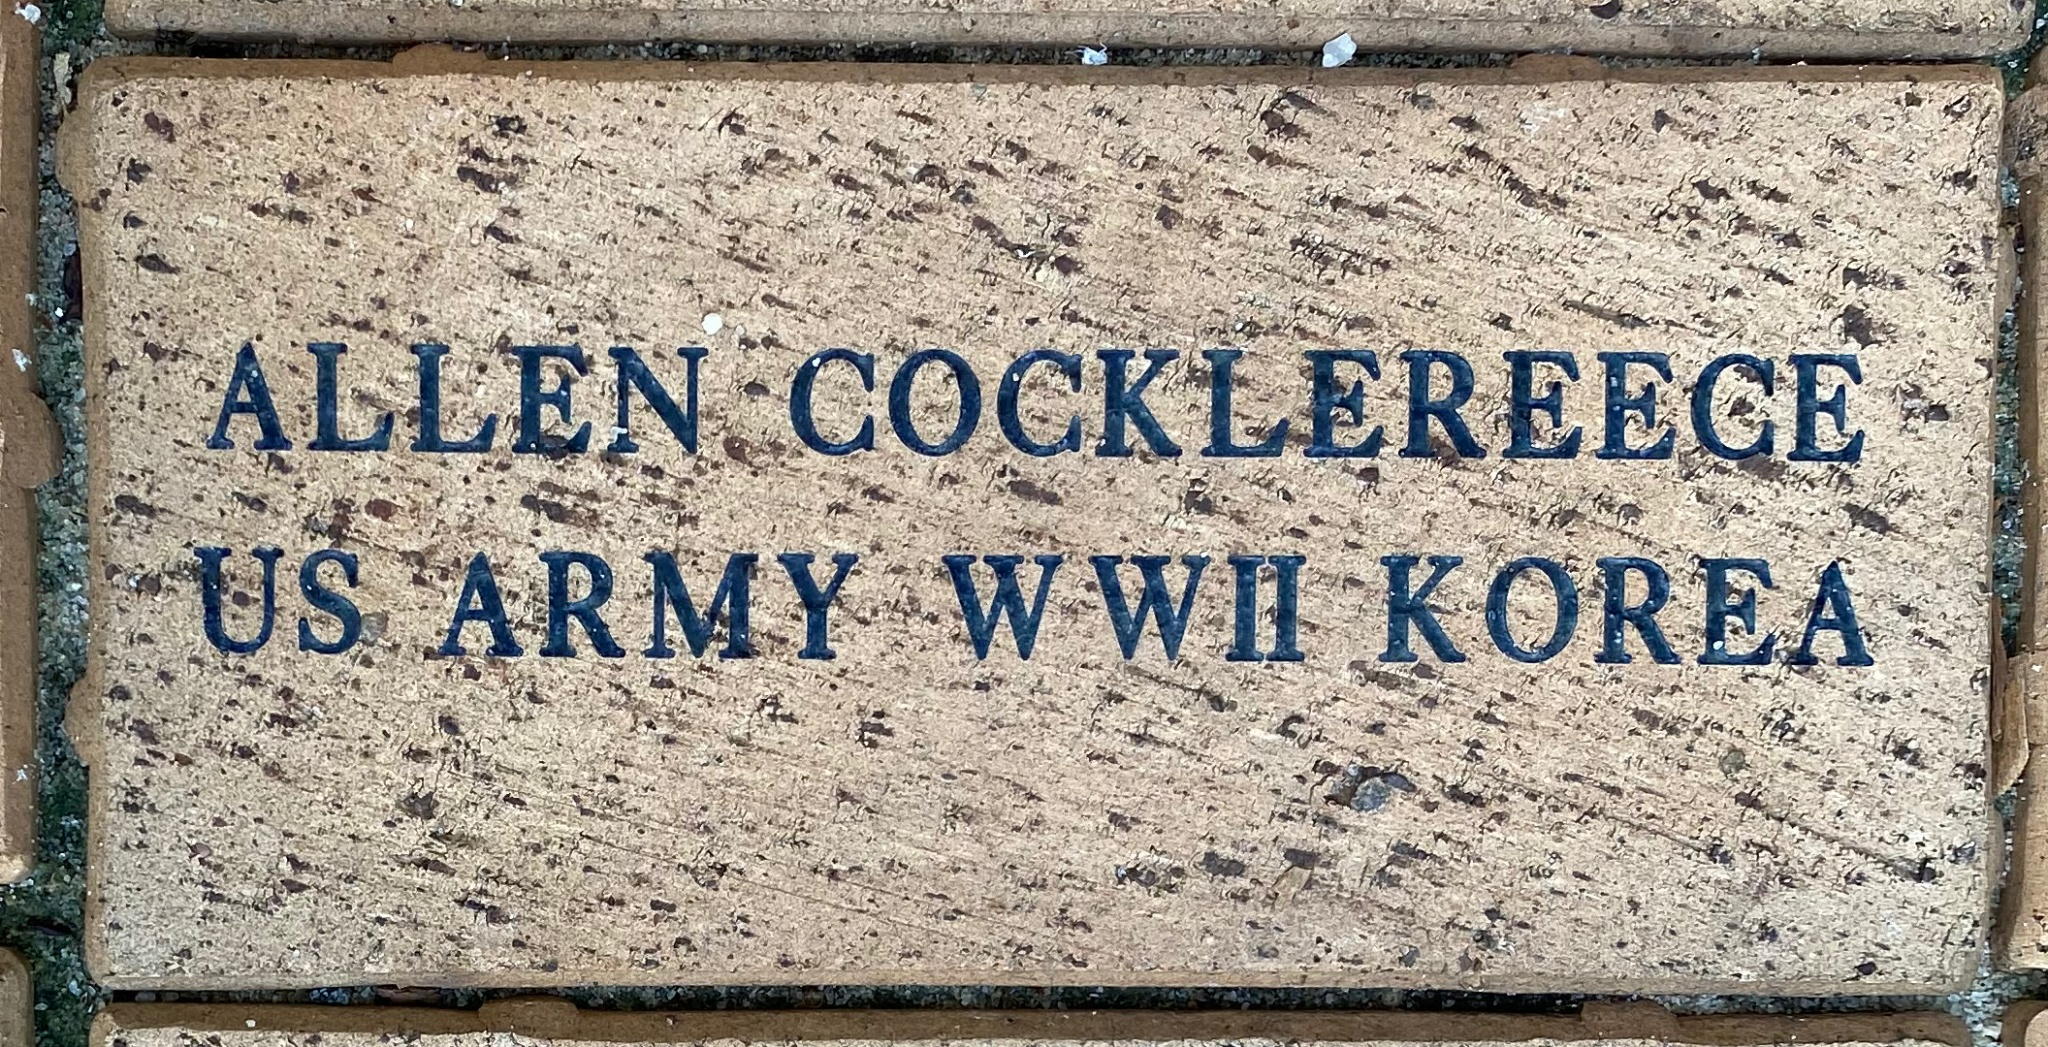 ALLEN COCKLEREECE US ARMY WWII KOREA